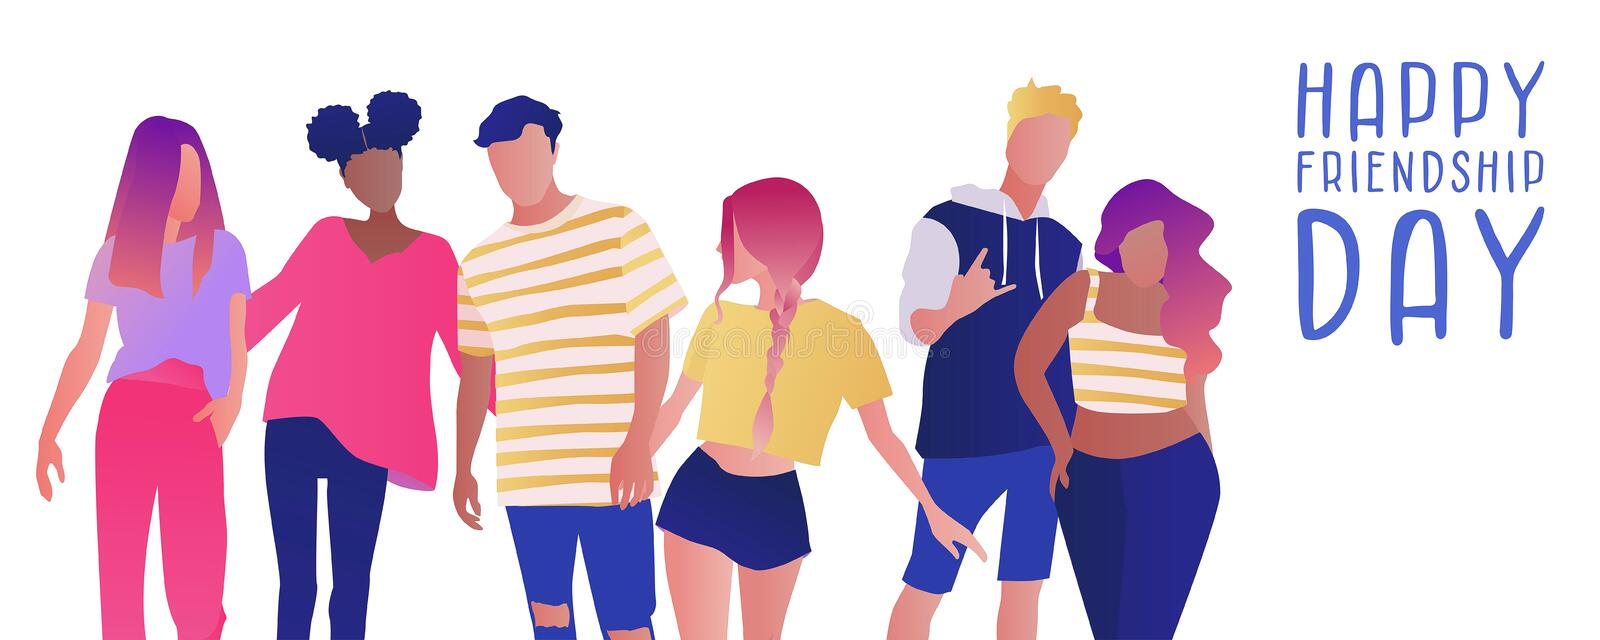 Group of teenage boys and girls or school friends standing together, embracing each other. Flat cartoon vector illustration. vector illustration